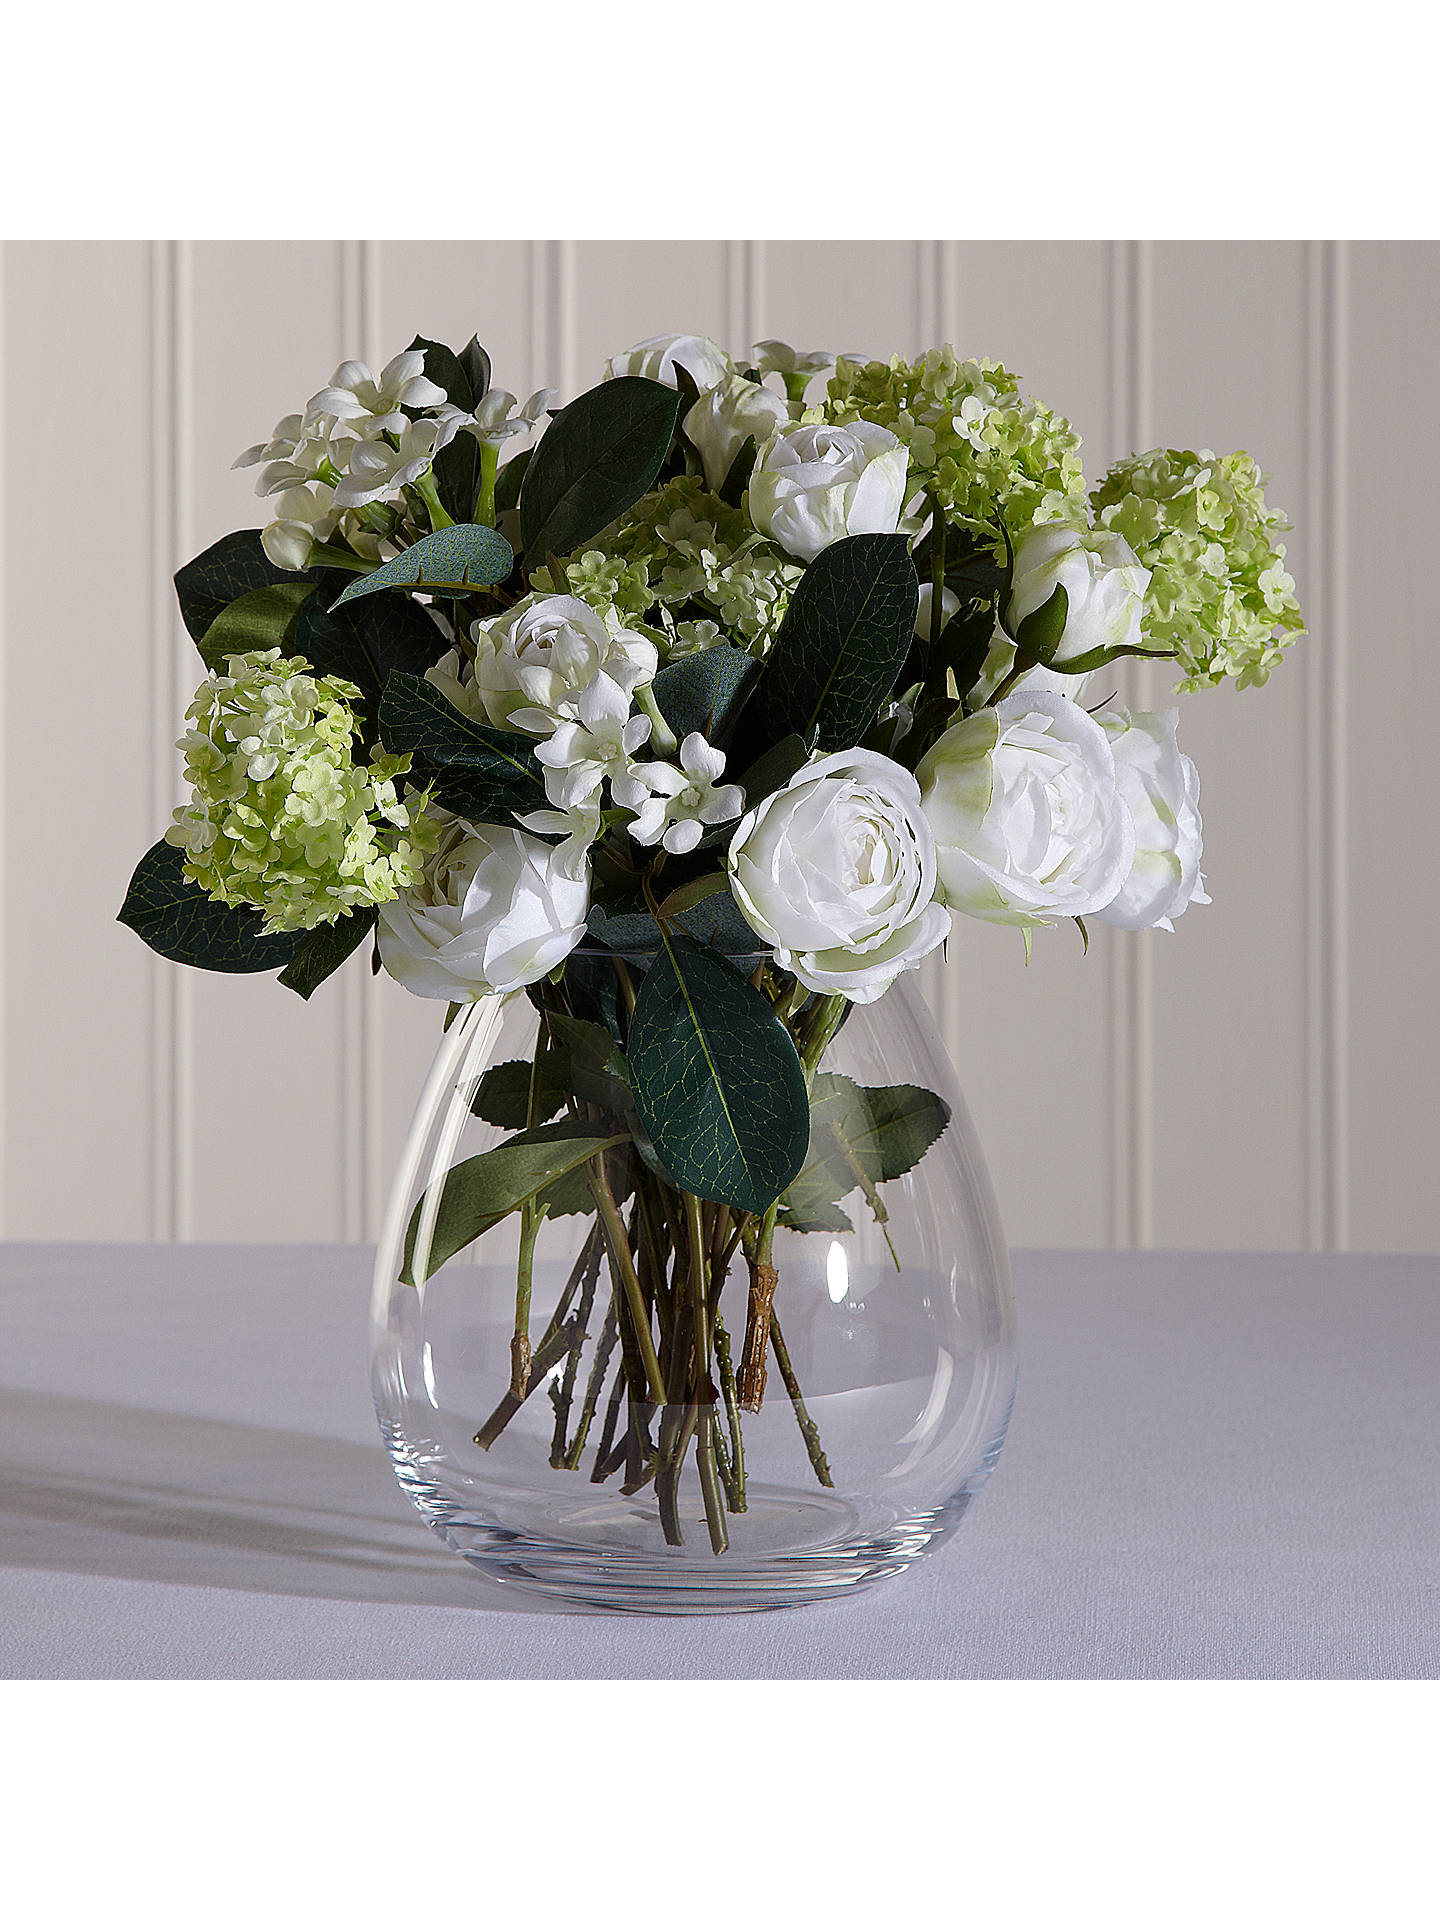 Lsa Flower Table Bouquet Vase H17cm At John Lewis Partners